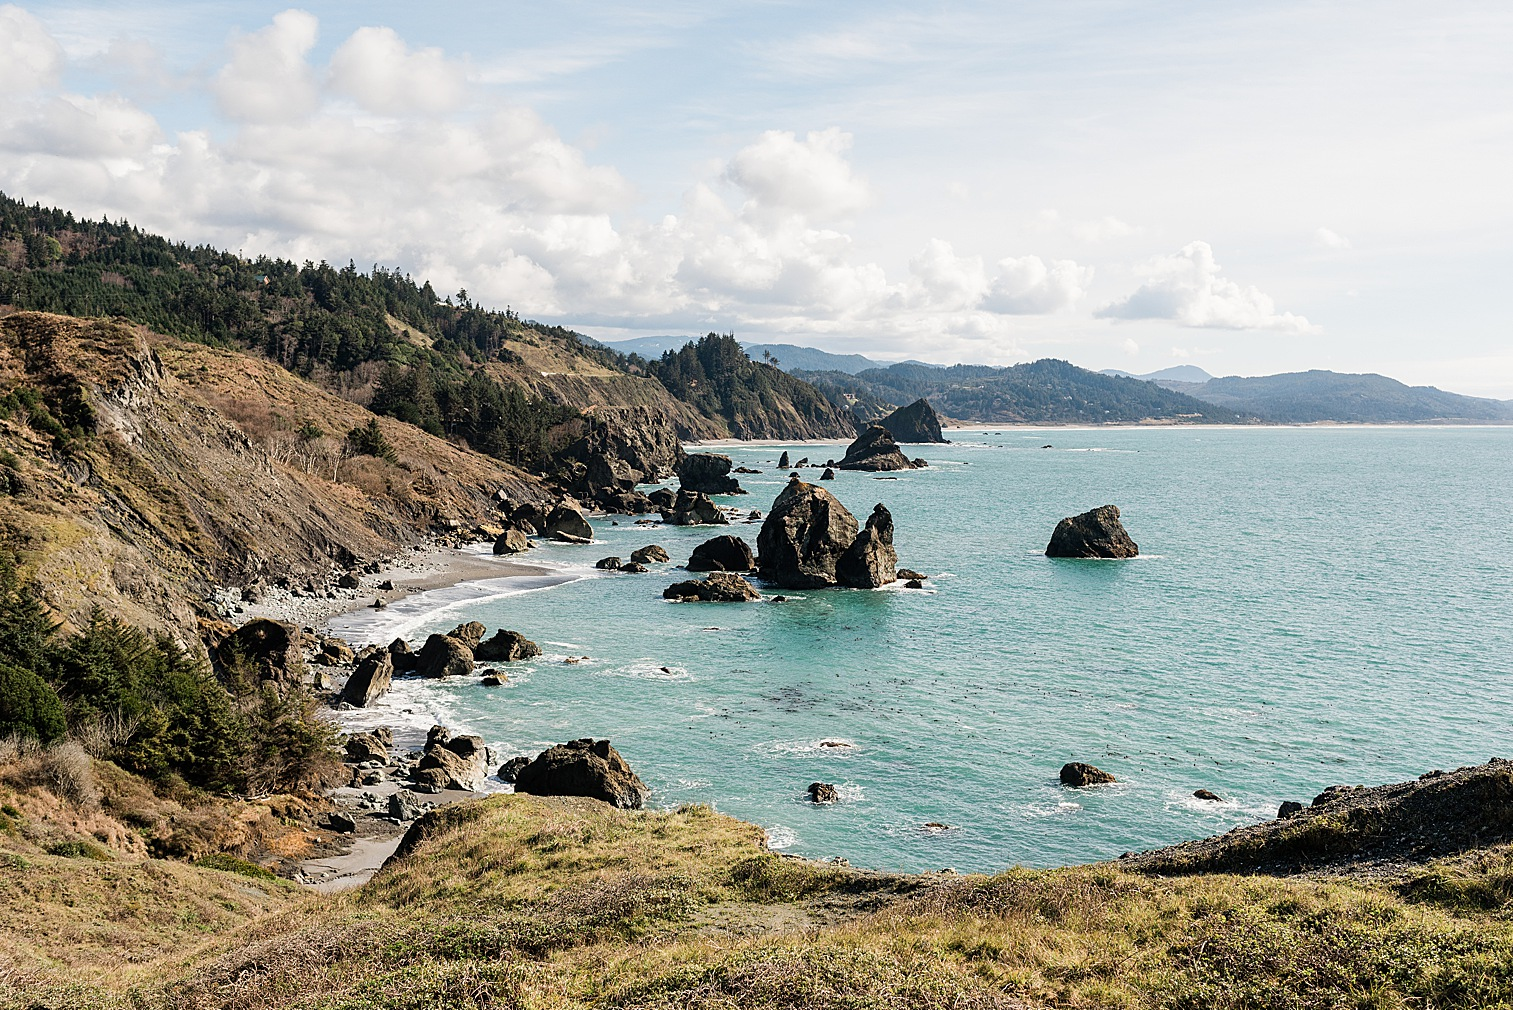 Oregon Coast Elopement Locations & Inspiration - Sisters Rock. Image by Forthright Photo